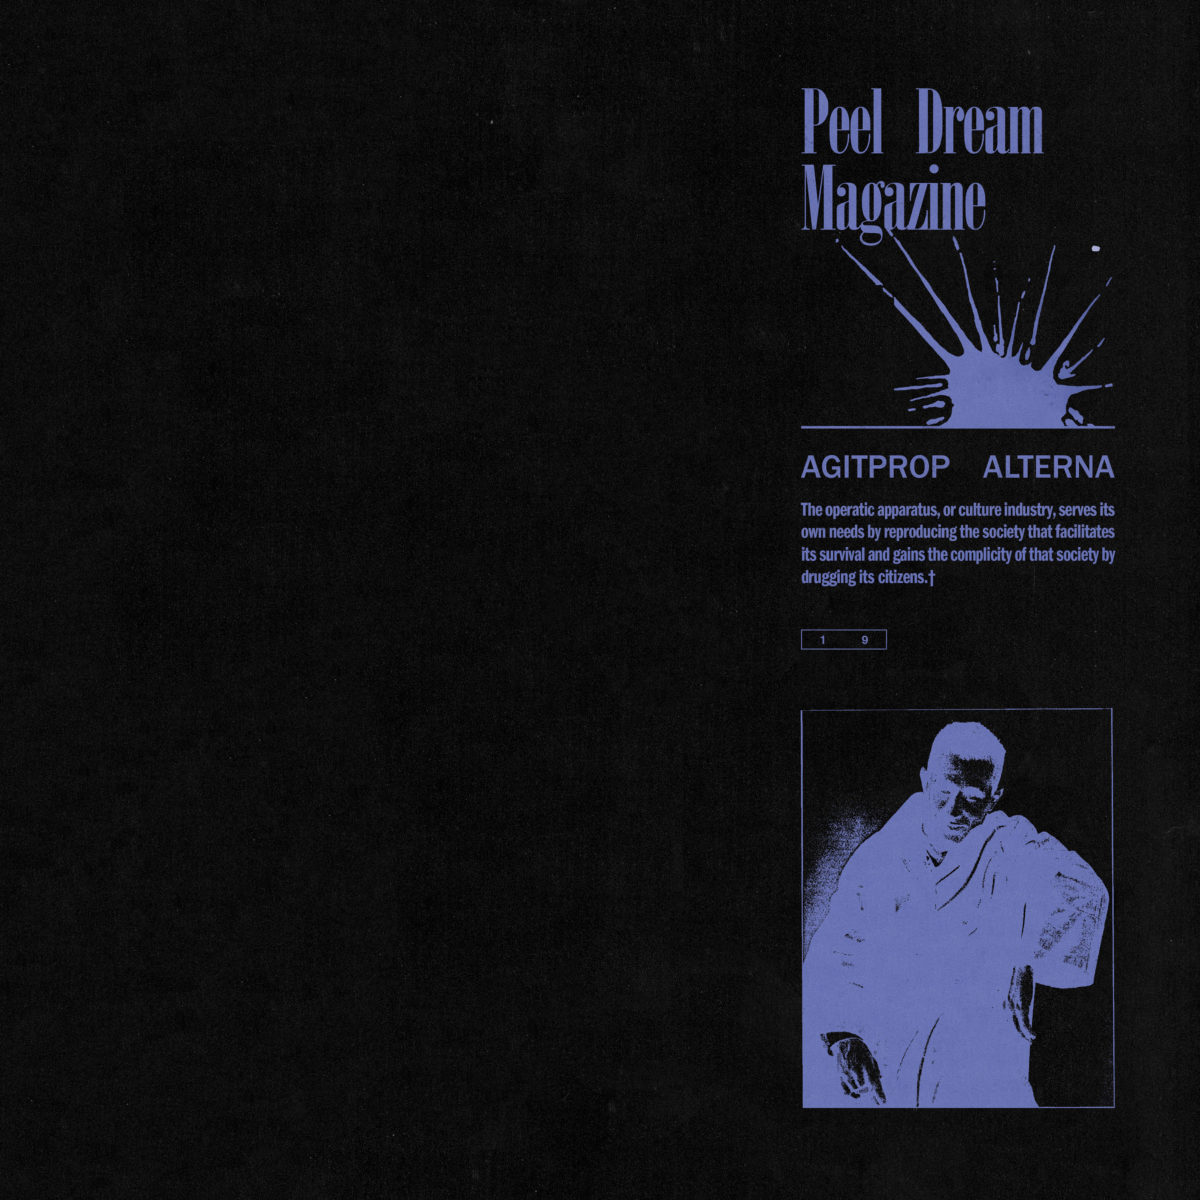 Peel Dream Magazine | Agitprop Alterna | 3hive.com